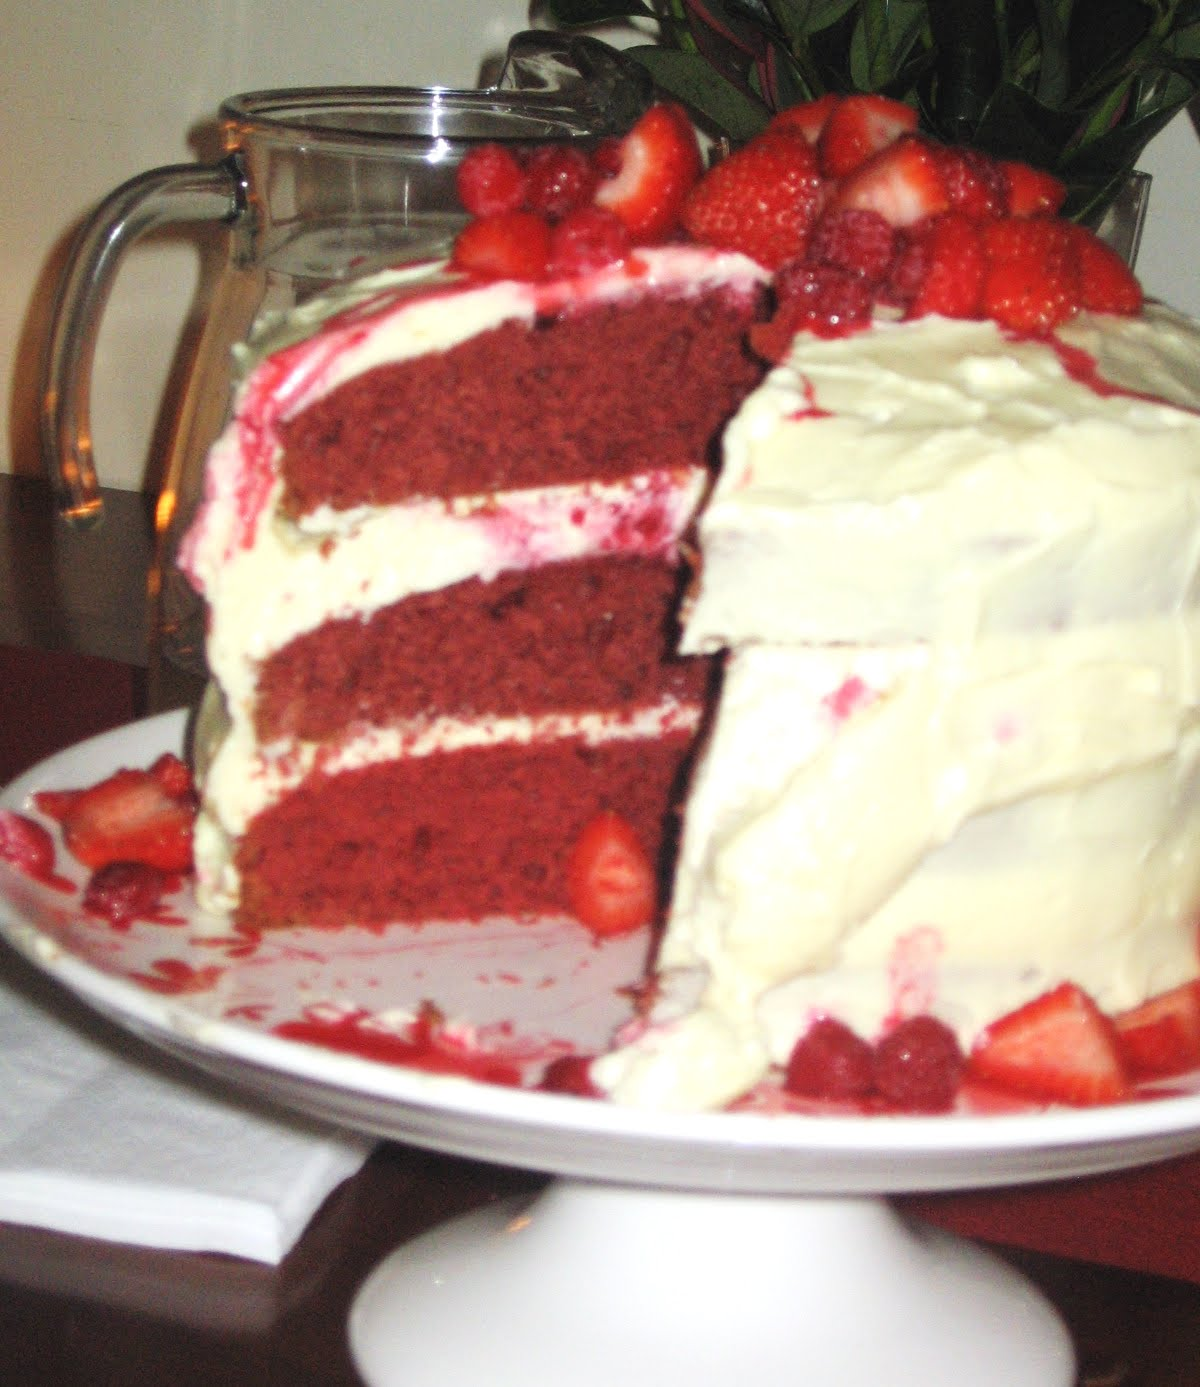 Epicurious Red Velvet Cake With Raspberries And Blueberries